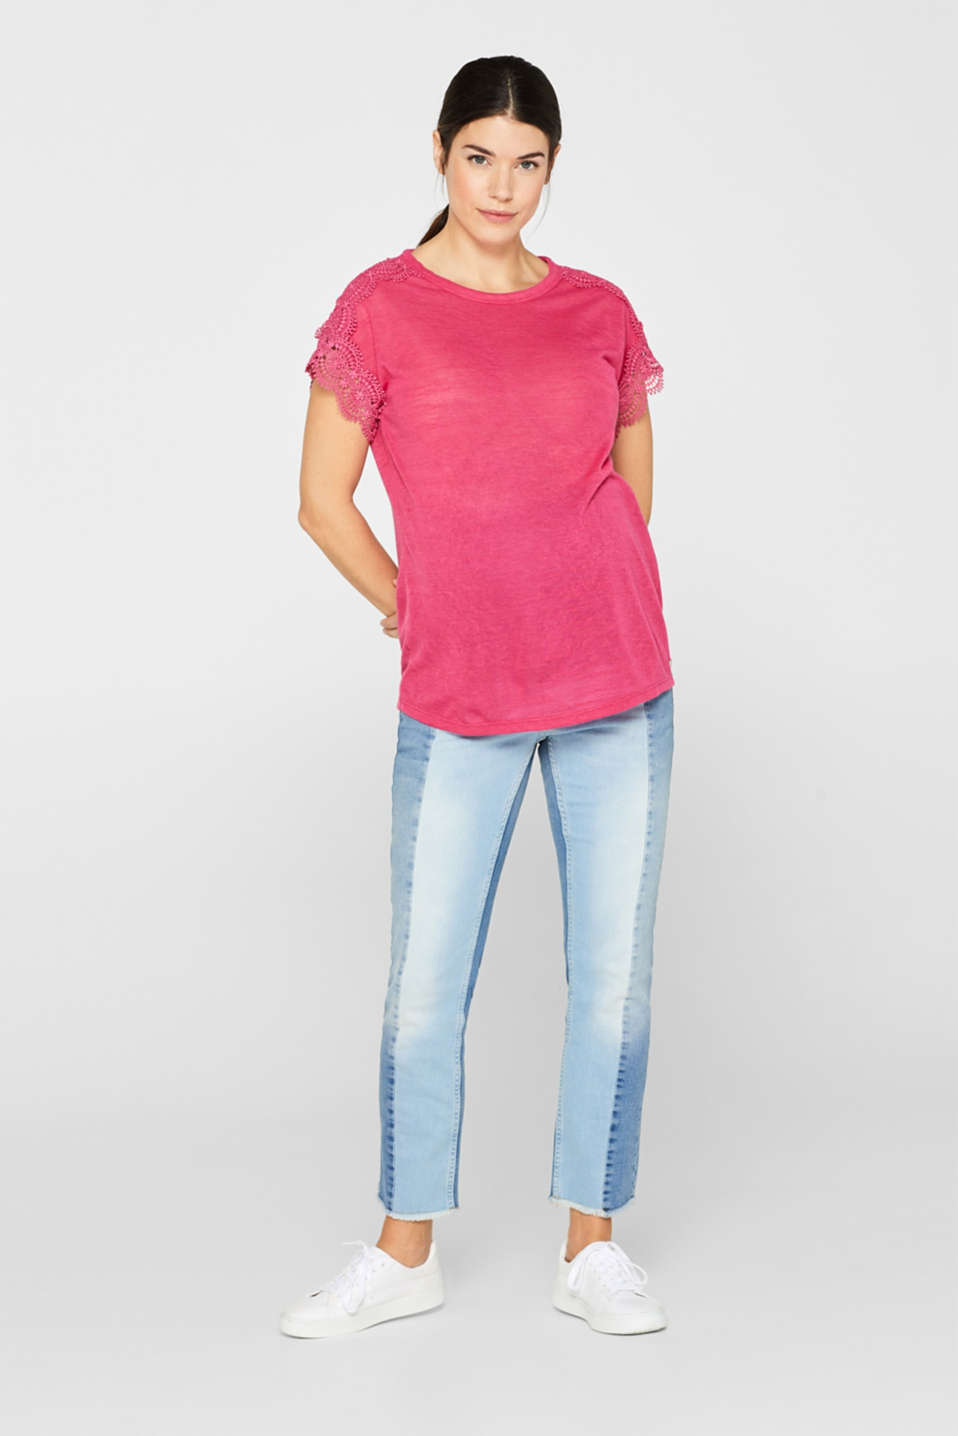 Lace-trimmed slub tee, LCPINK FUCHSIA, detail image number 1